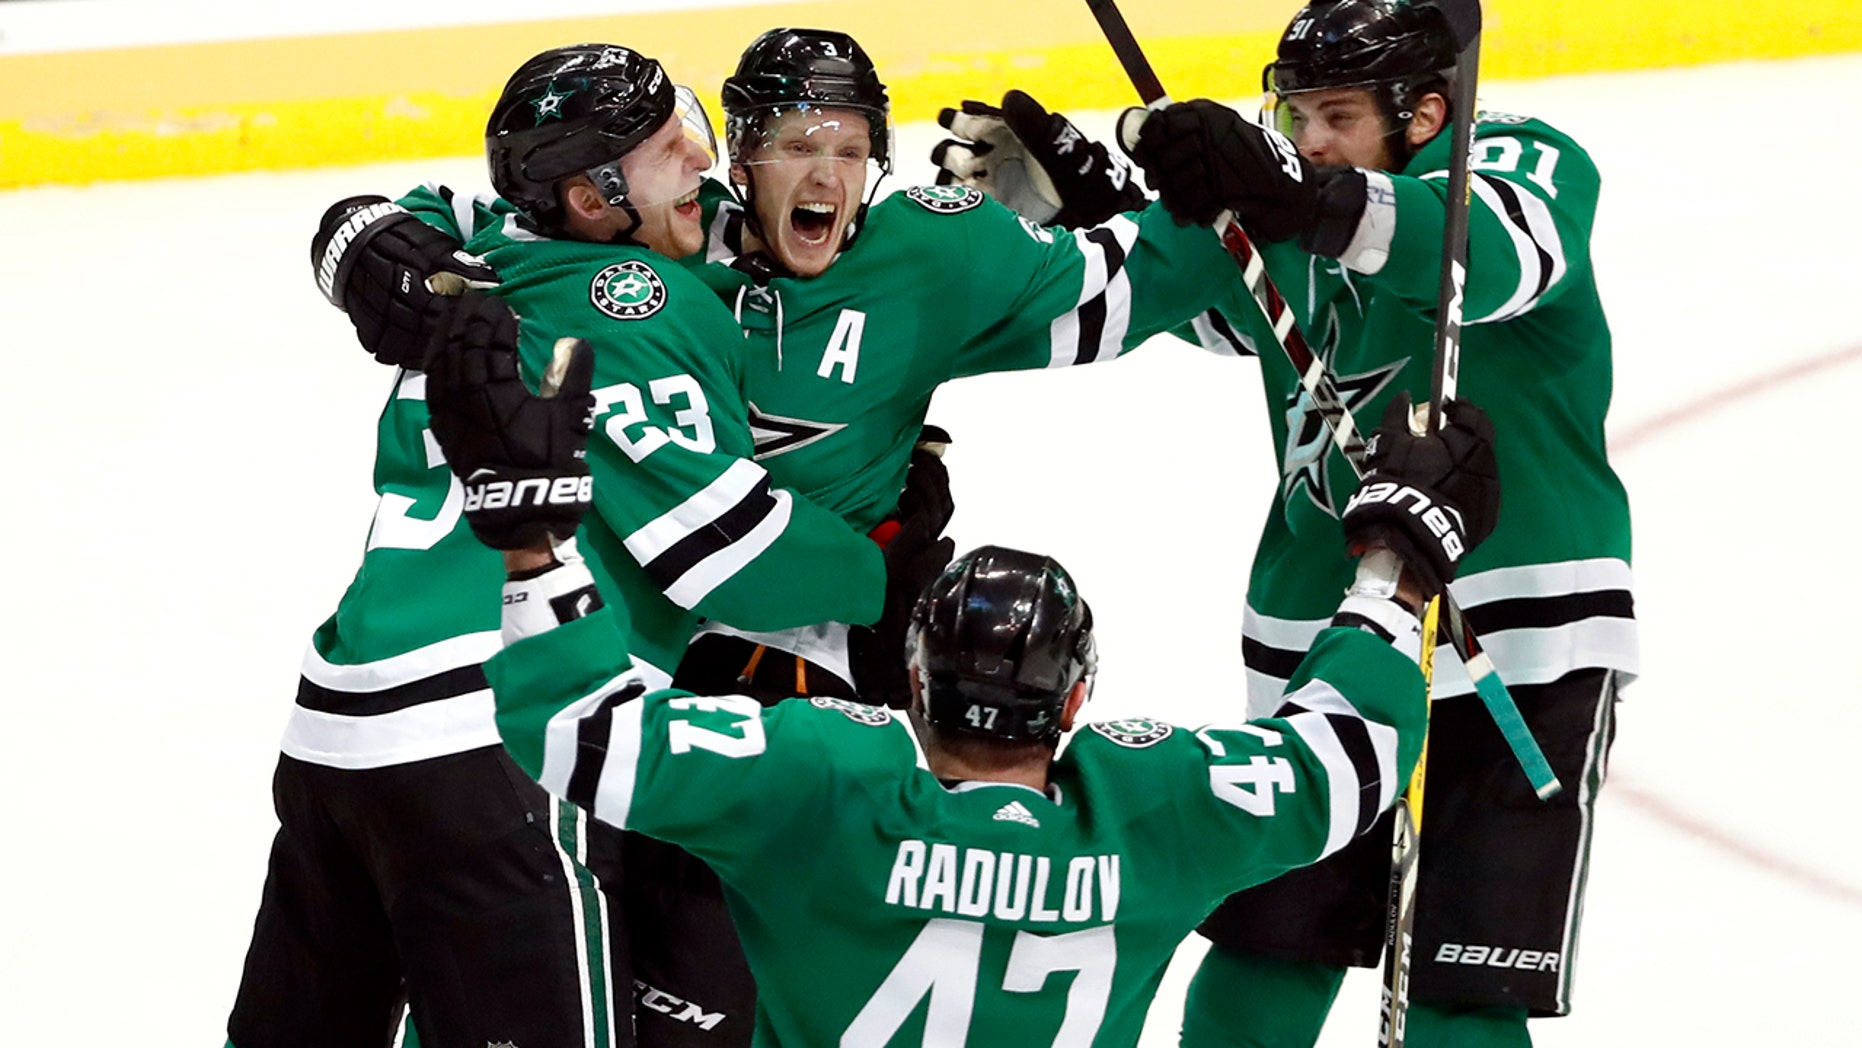 Dallas Stars' Esa Lindell (23), Alexander Radulov (47) and Tyler Seguin (91) celebrate with John Klingberg, center, who scored in overtime against the Nashville Predators in Game 6 of an NHL hockey first-round playoff series in Dallas, Monday, April 22, 2019. The Stars won 2-1 in overtime. (AP Photo/Tony Gutierrez)